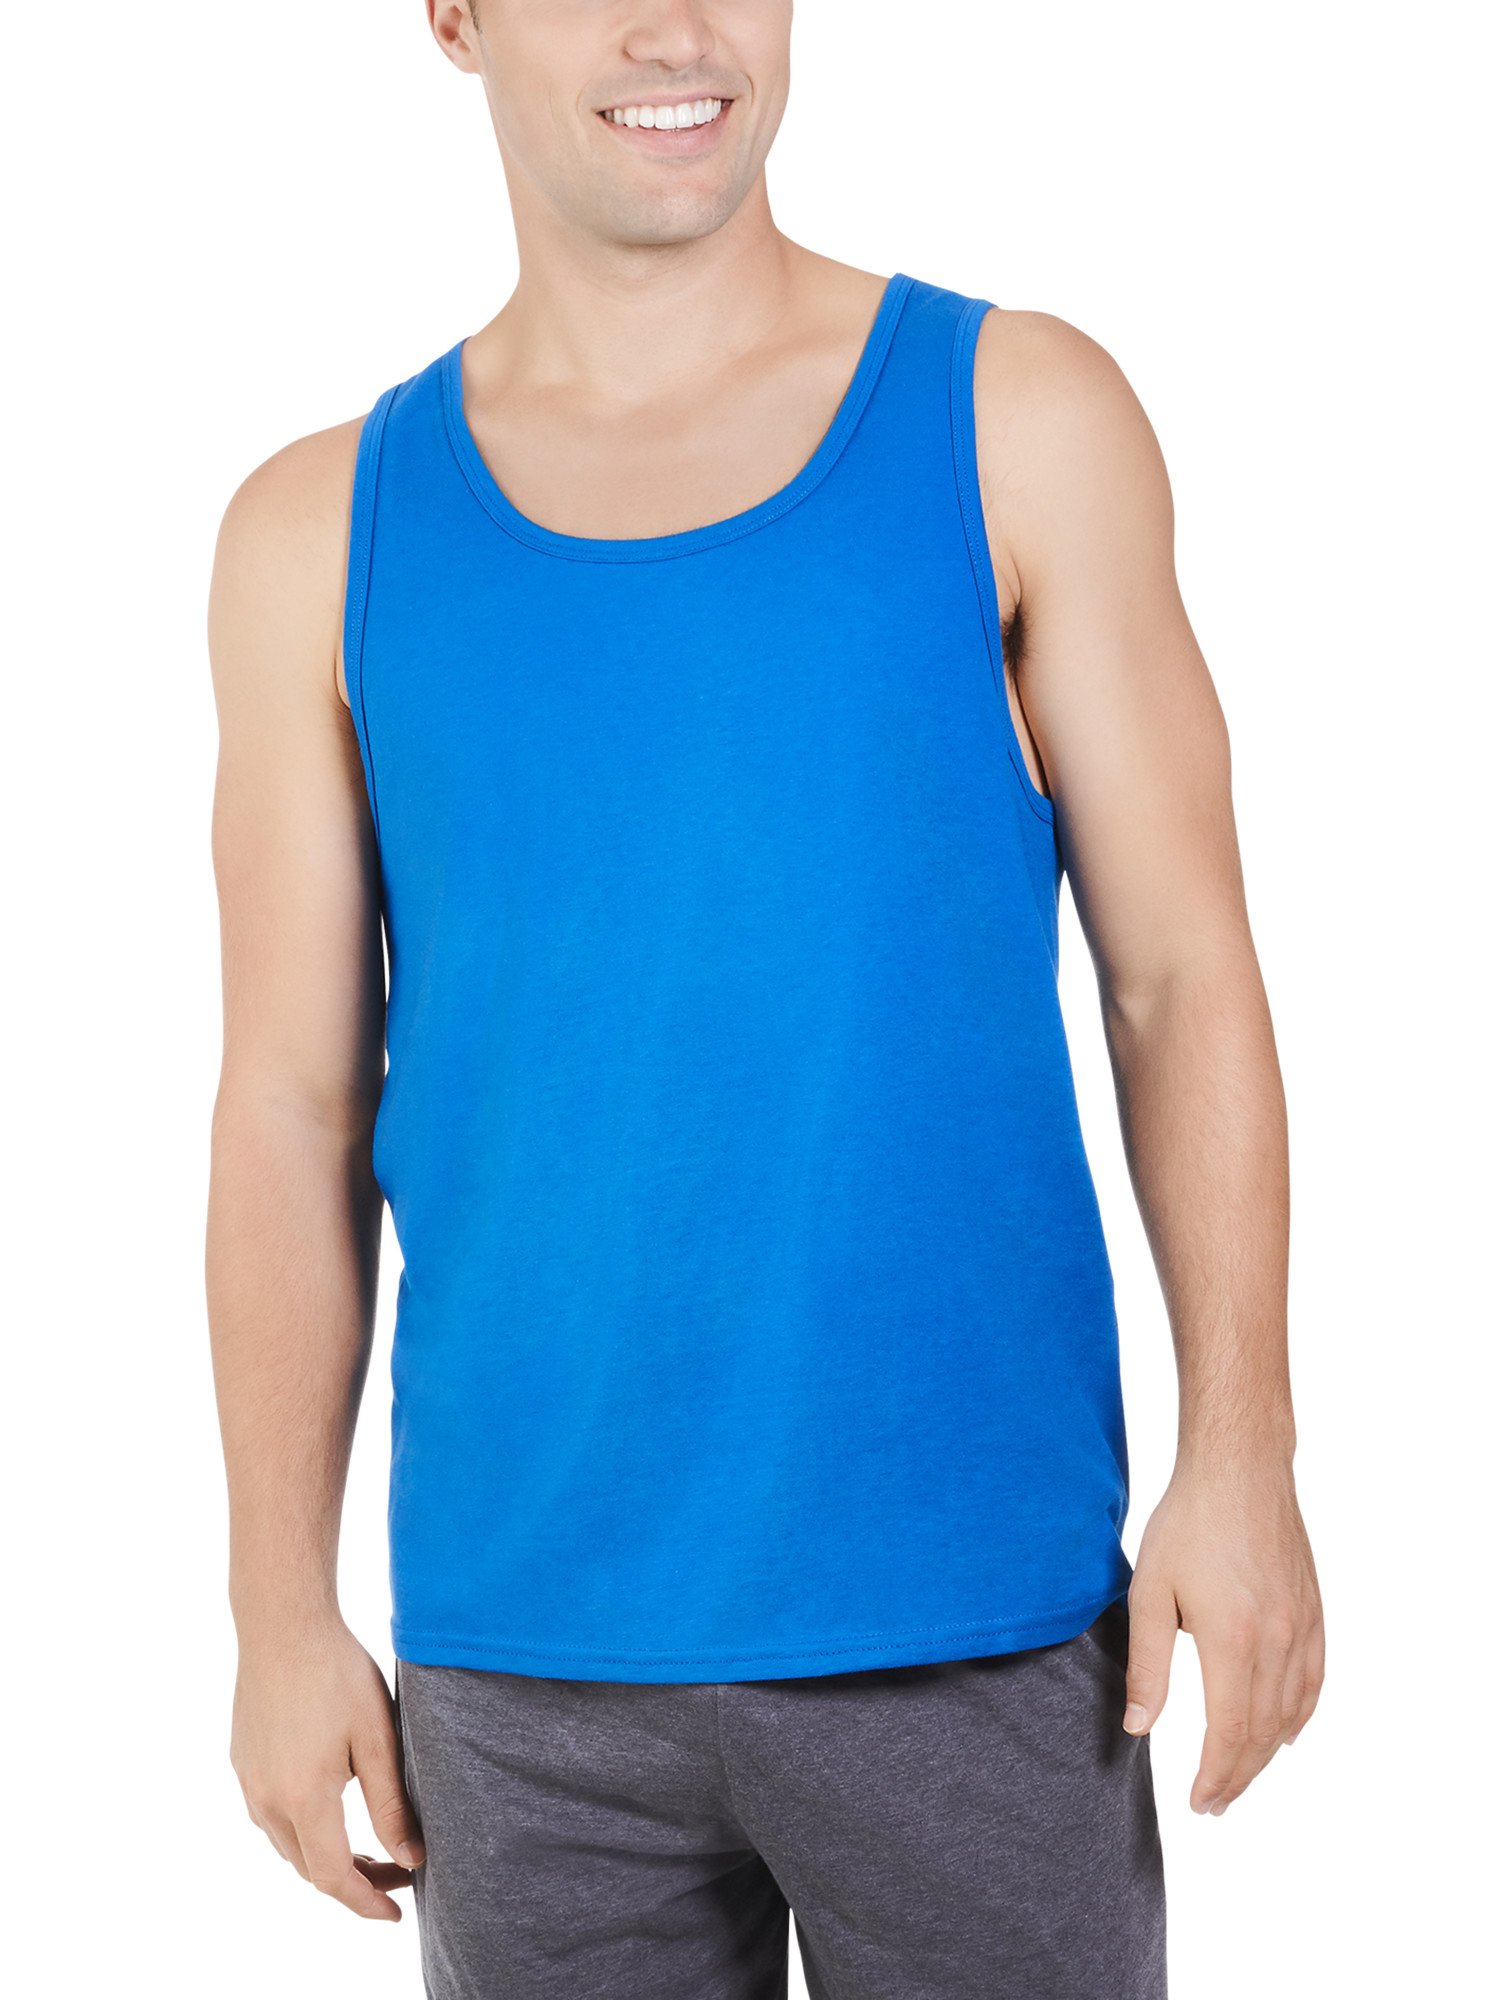 Big Men's Dual Defense UPF Tank, Available up to sizes 4XL